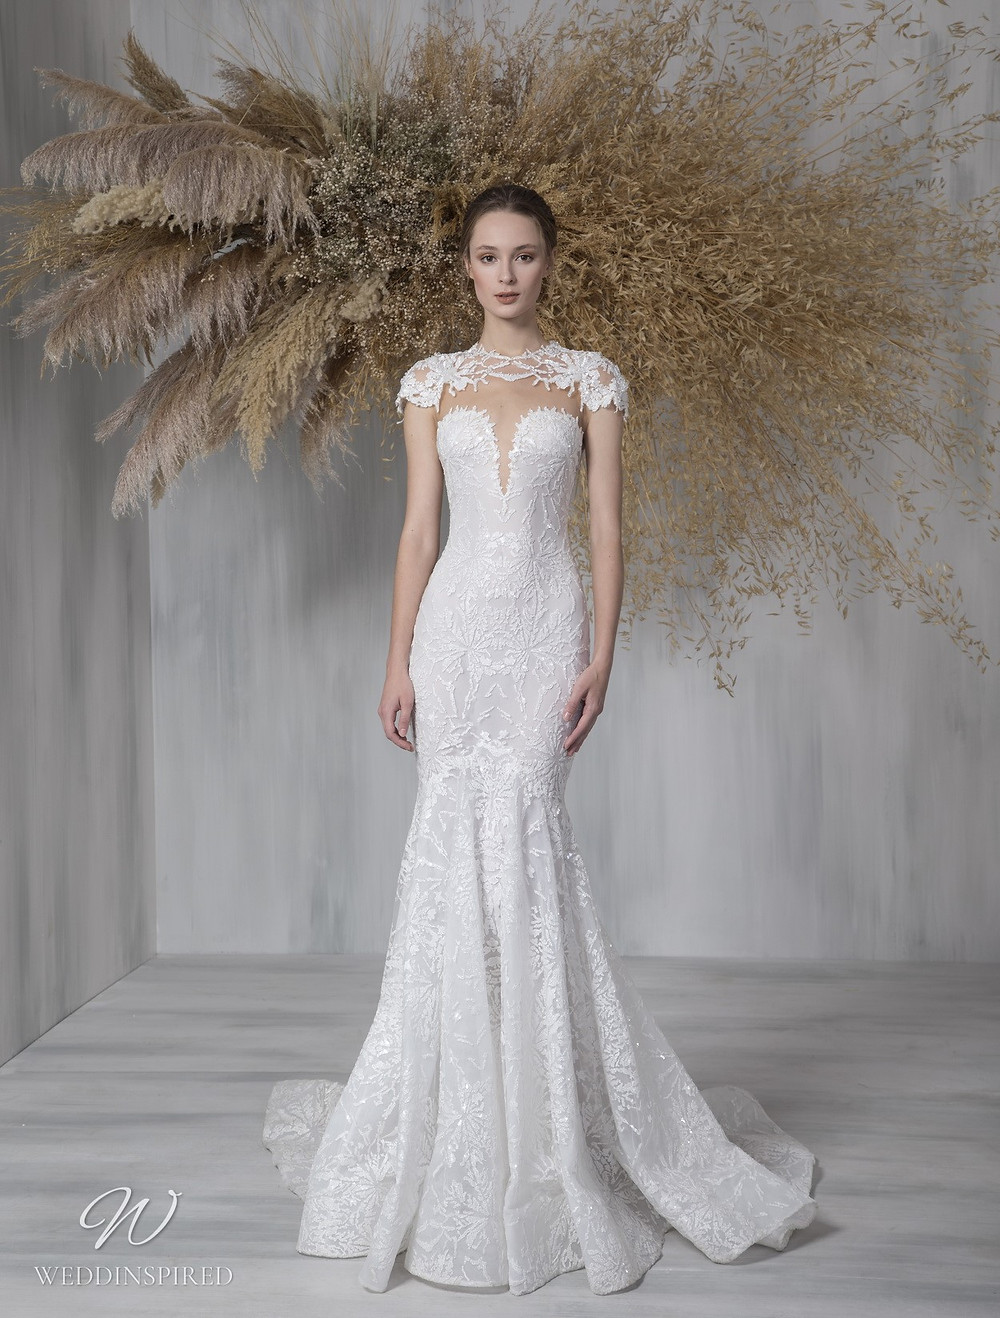 A Tony Ward 2021 lace mermaid wedding dress with an illusion top and cap sleeves